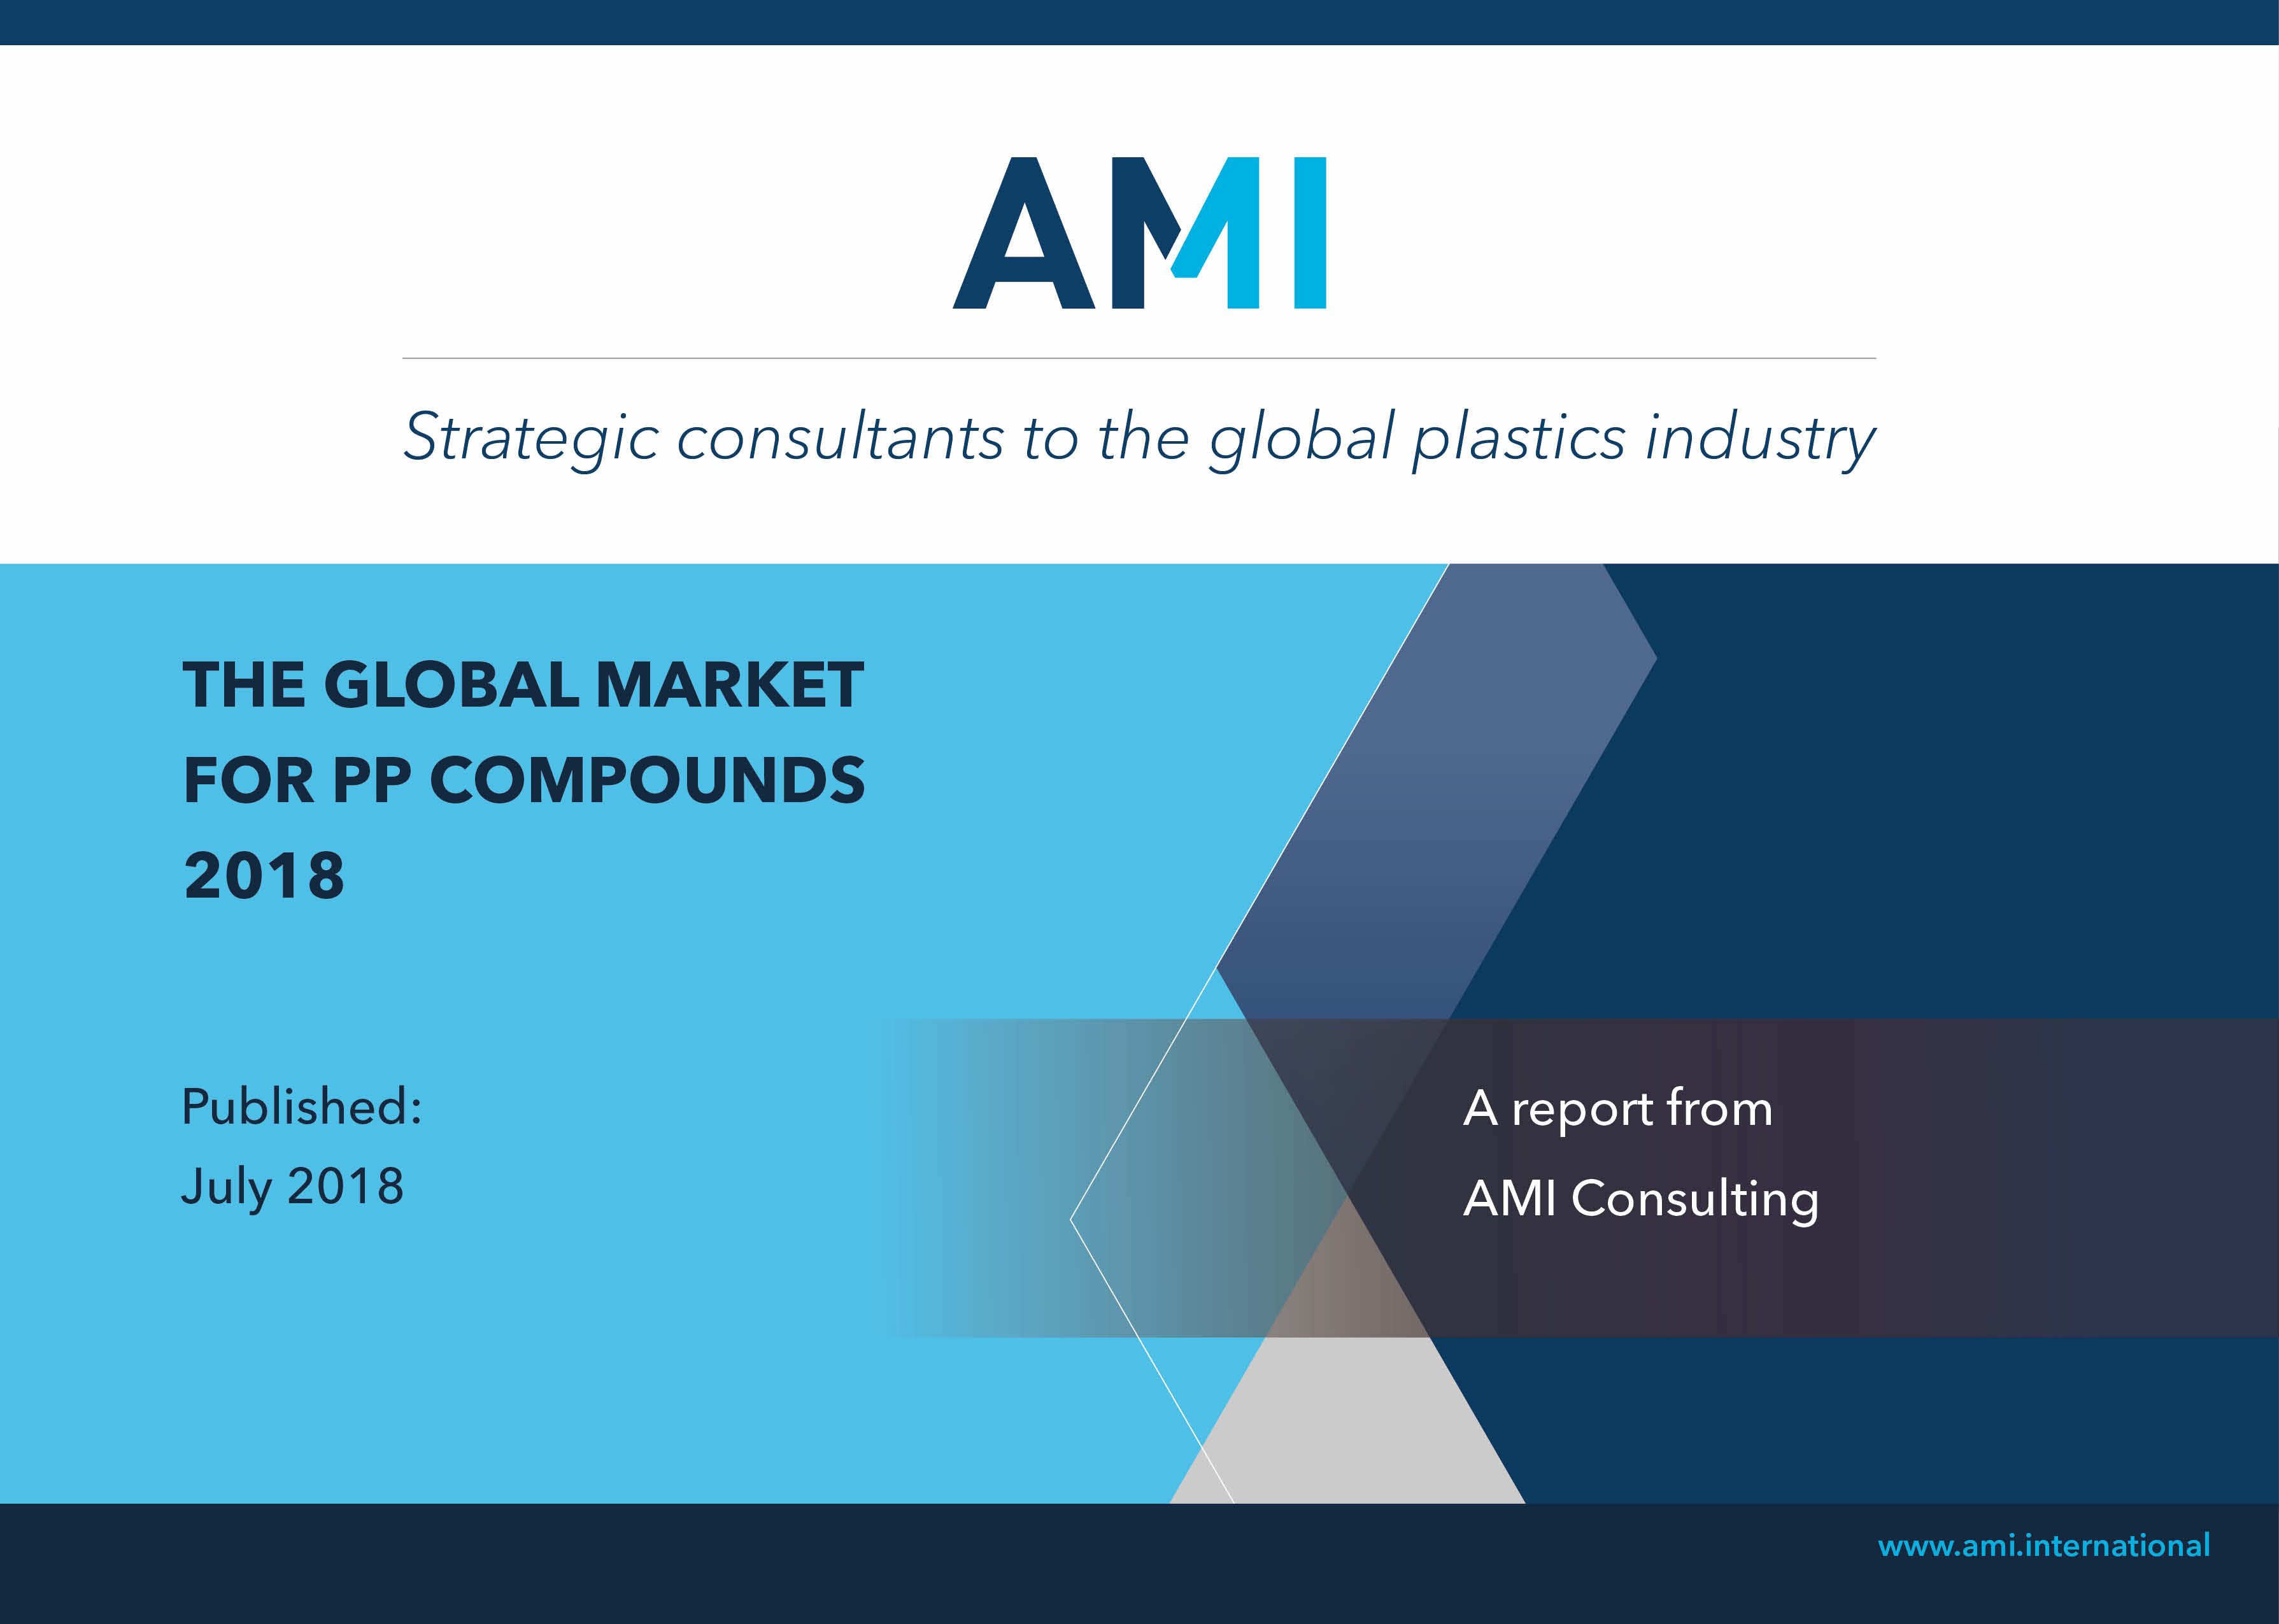 The global market for PP compounds